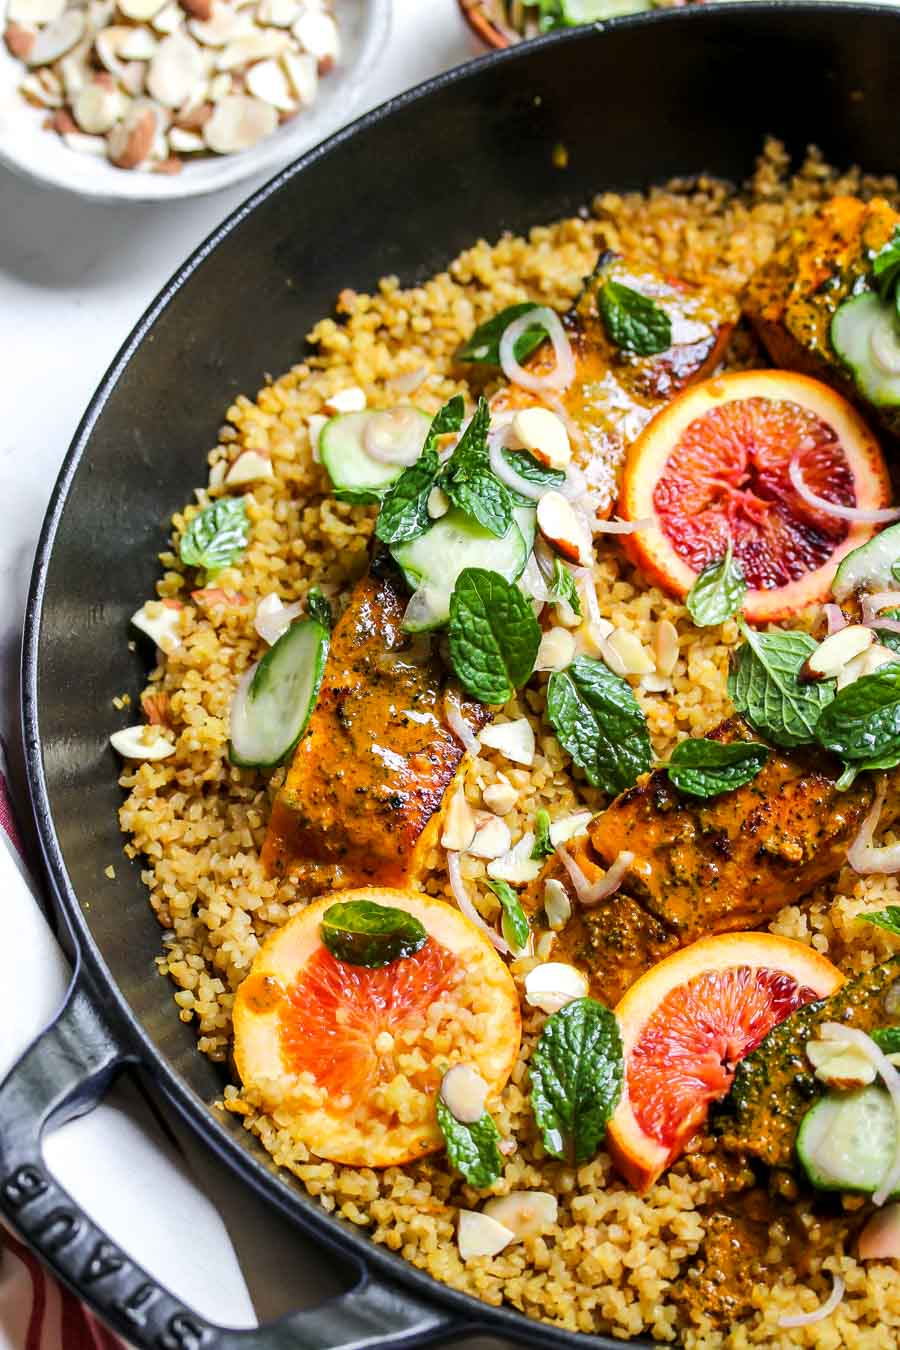 Turmeric-glazed salmon in a pan with bulgur wheat